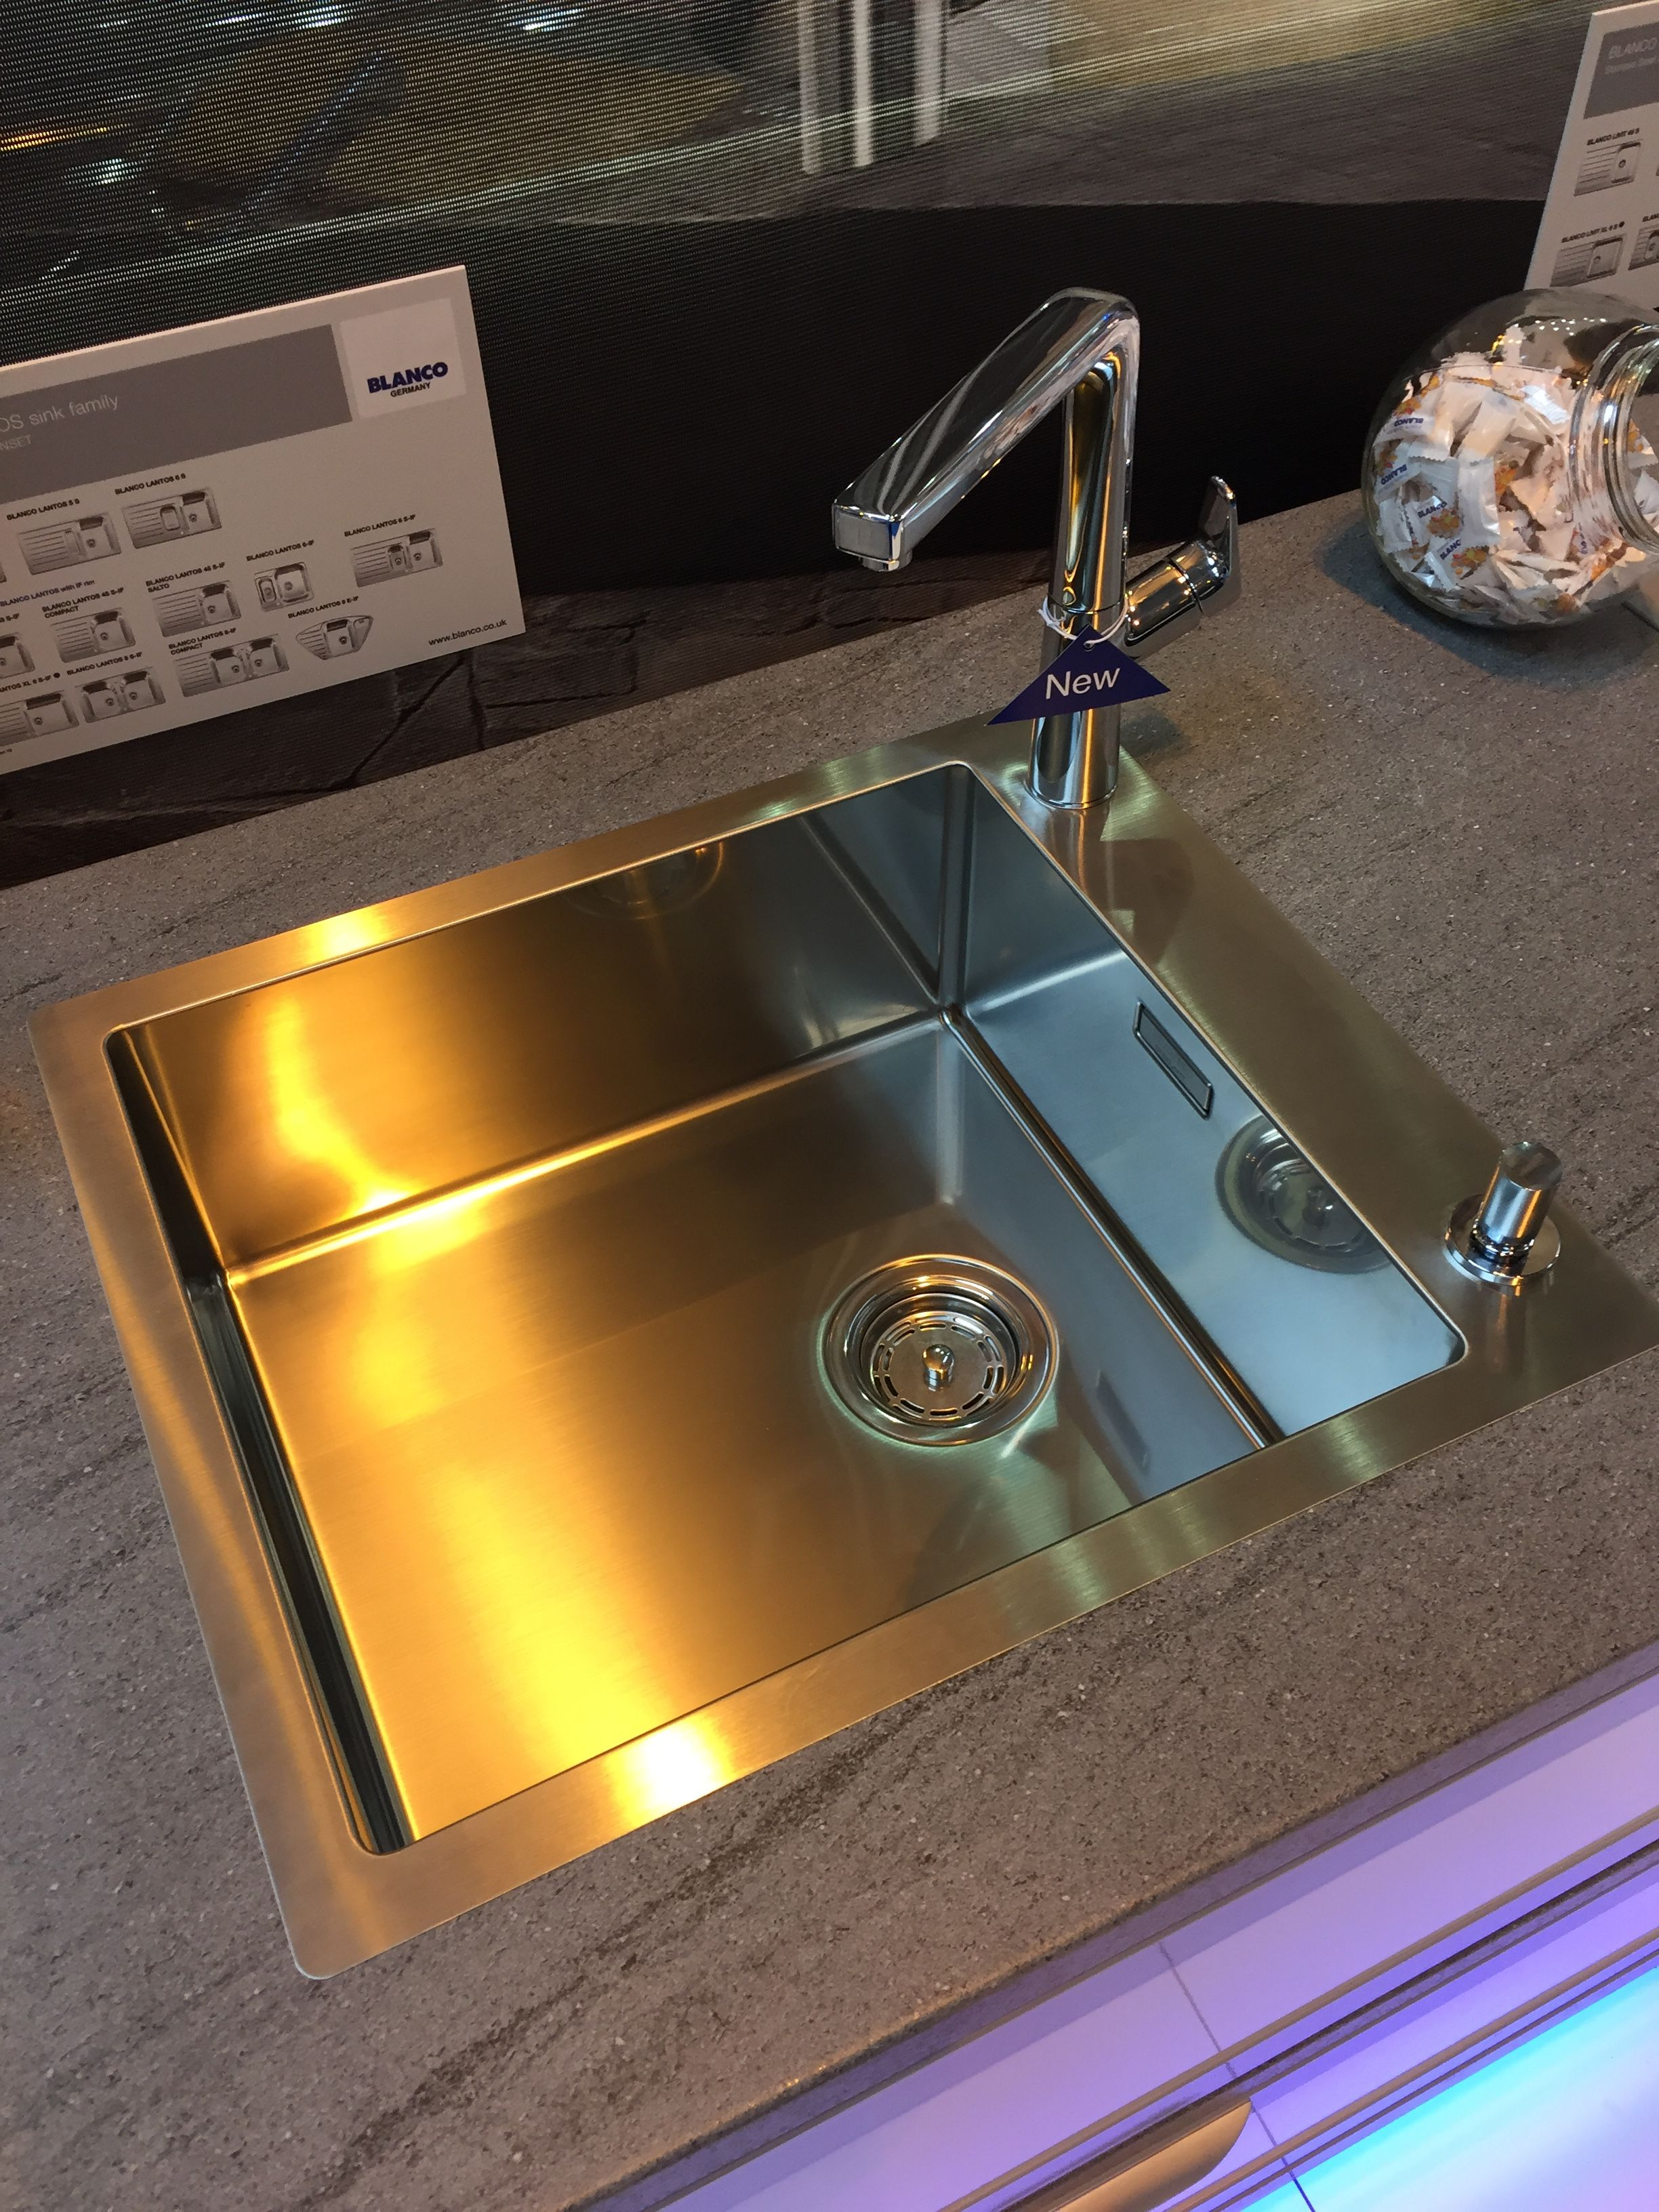 Blanco new sink with side tap position giving way for a large bowl ...